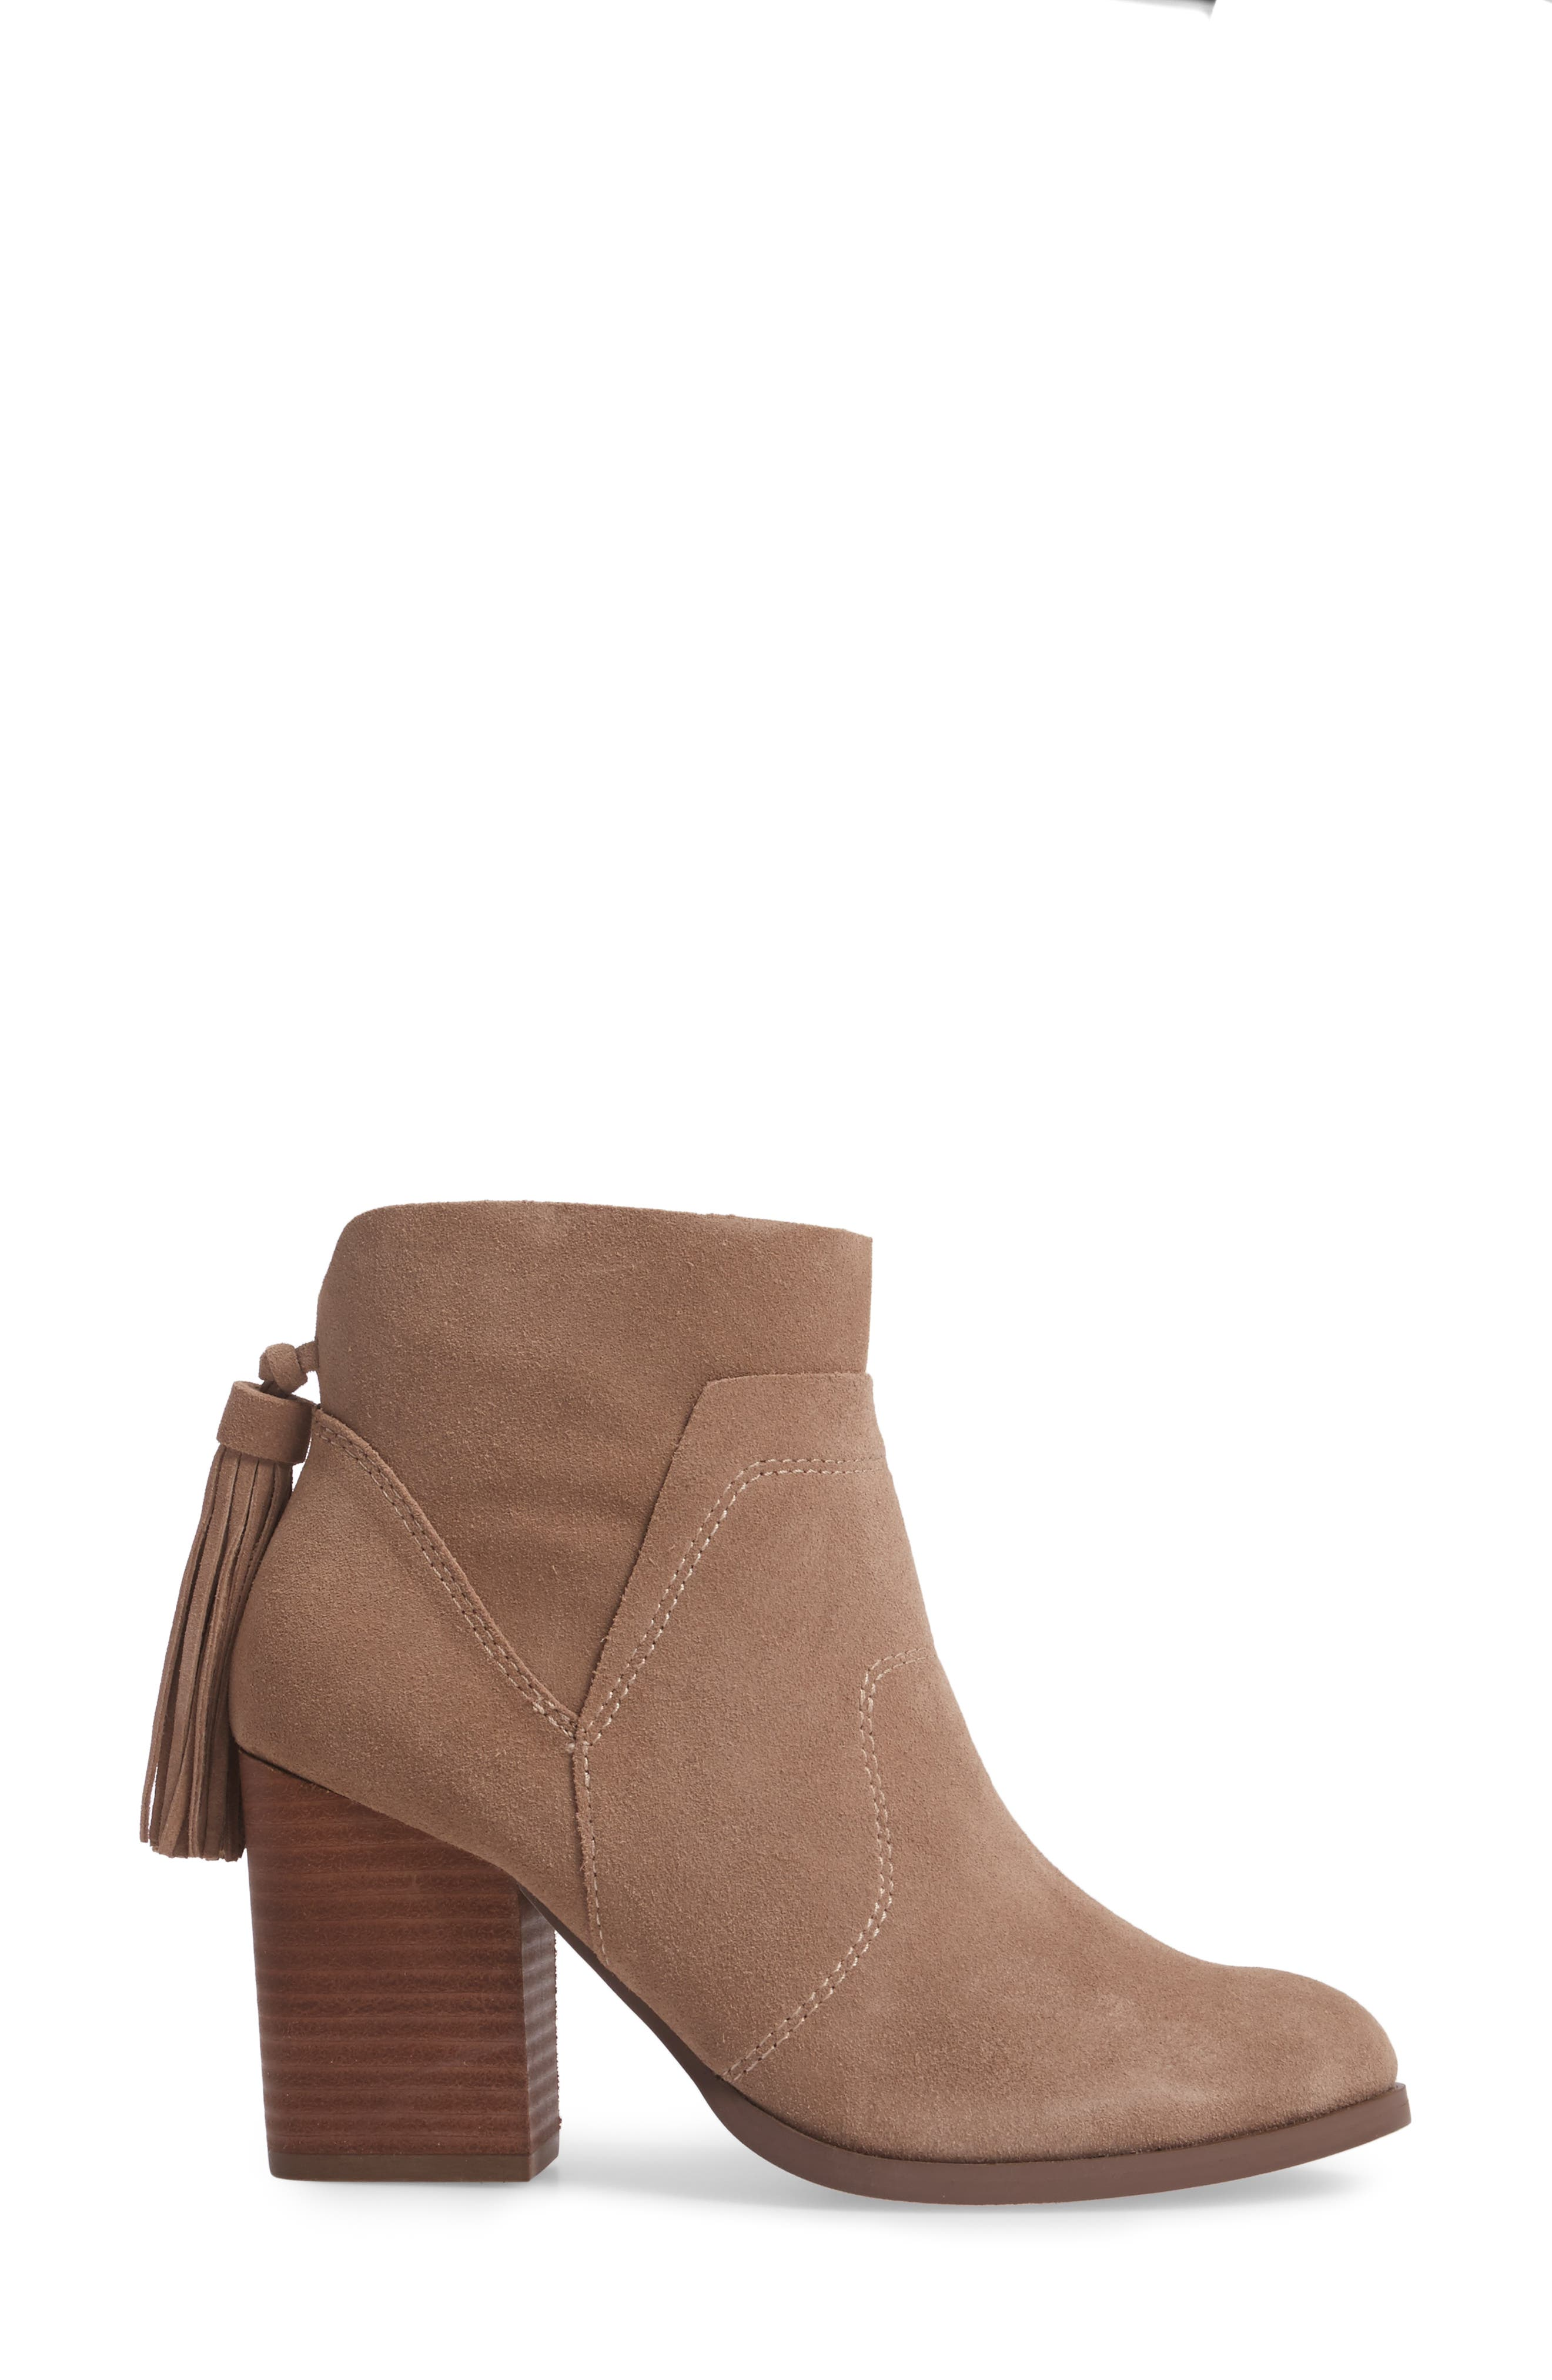 Ambrose Bootie,                             Alternate thumbnail 3, color,                             Taupe